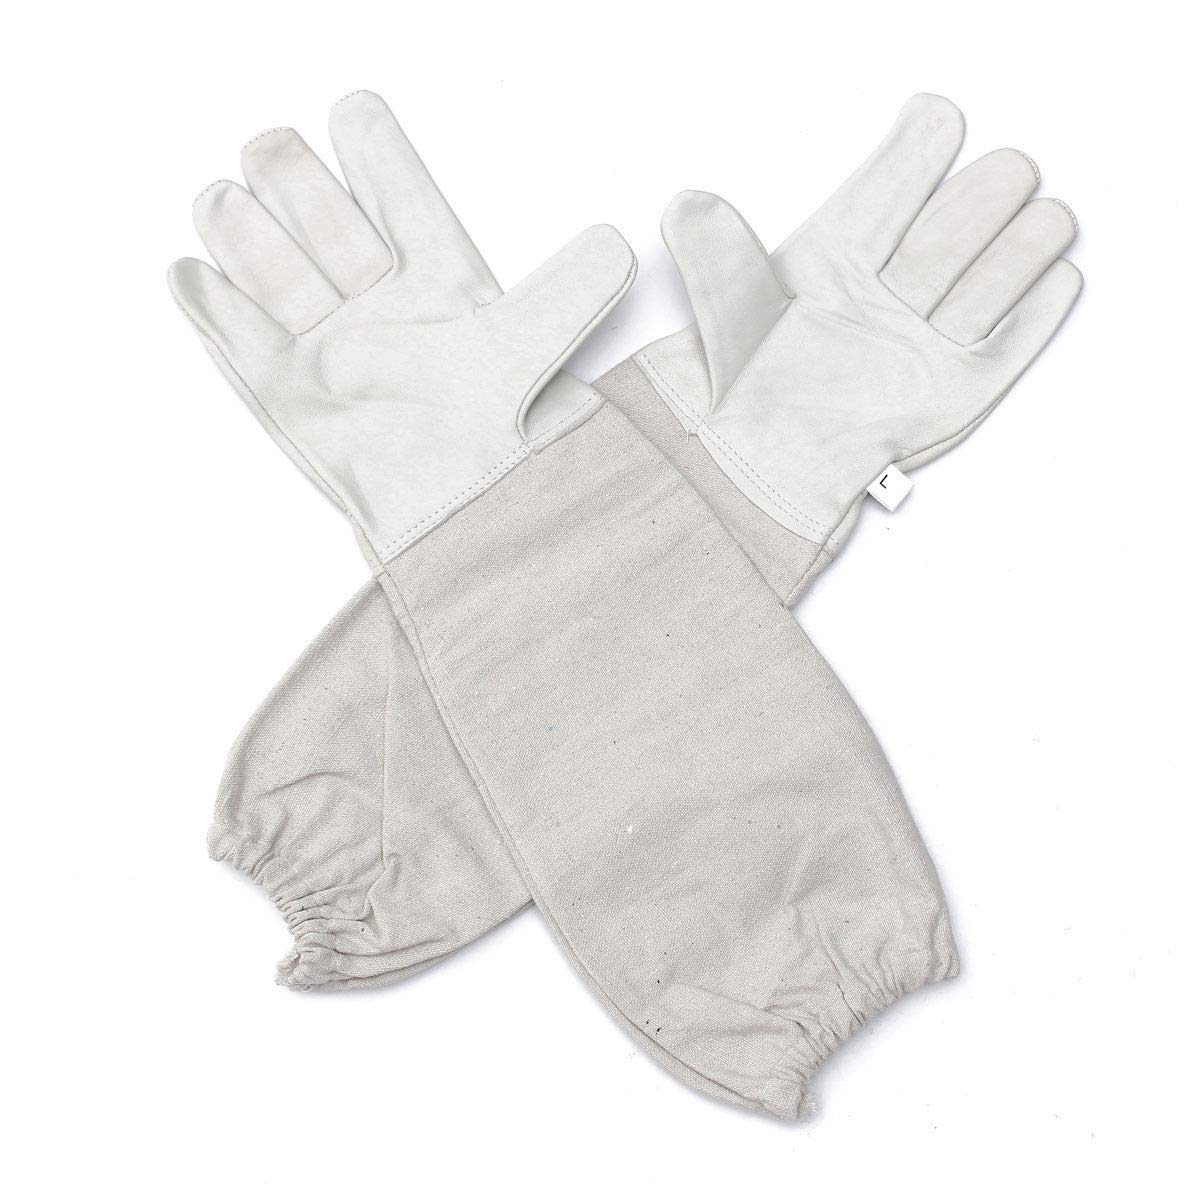 Beekeepers Bee Keeping Gloves - Soft White Goats Leather with Cotton Gauntlets (Small) Swift Wears